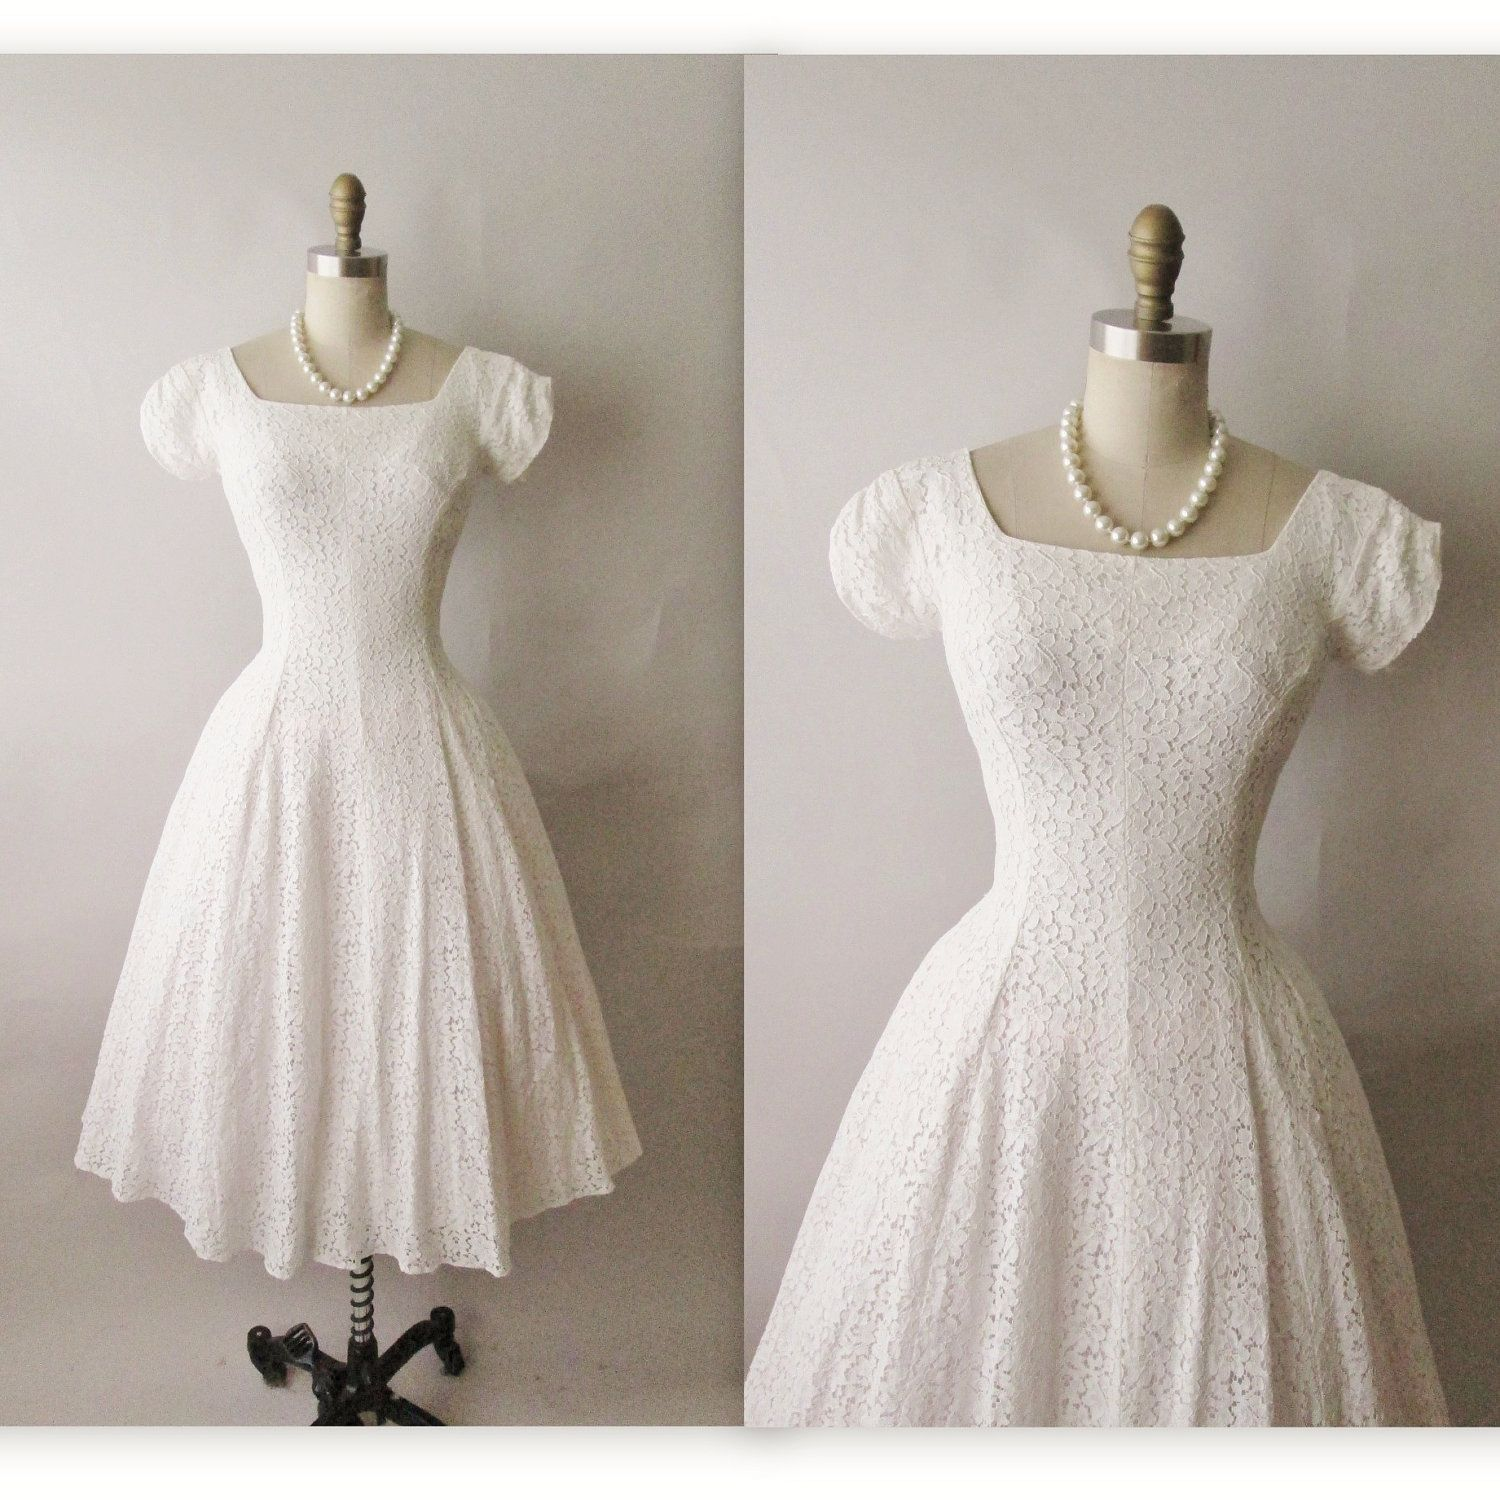 Vintage Wedding Dress Xs: 50's Wedding Dress // Vintage 1950's White Lace Wedding